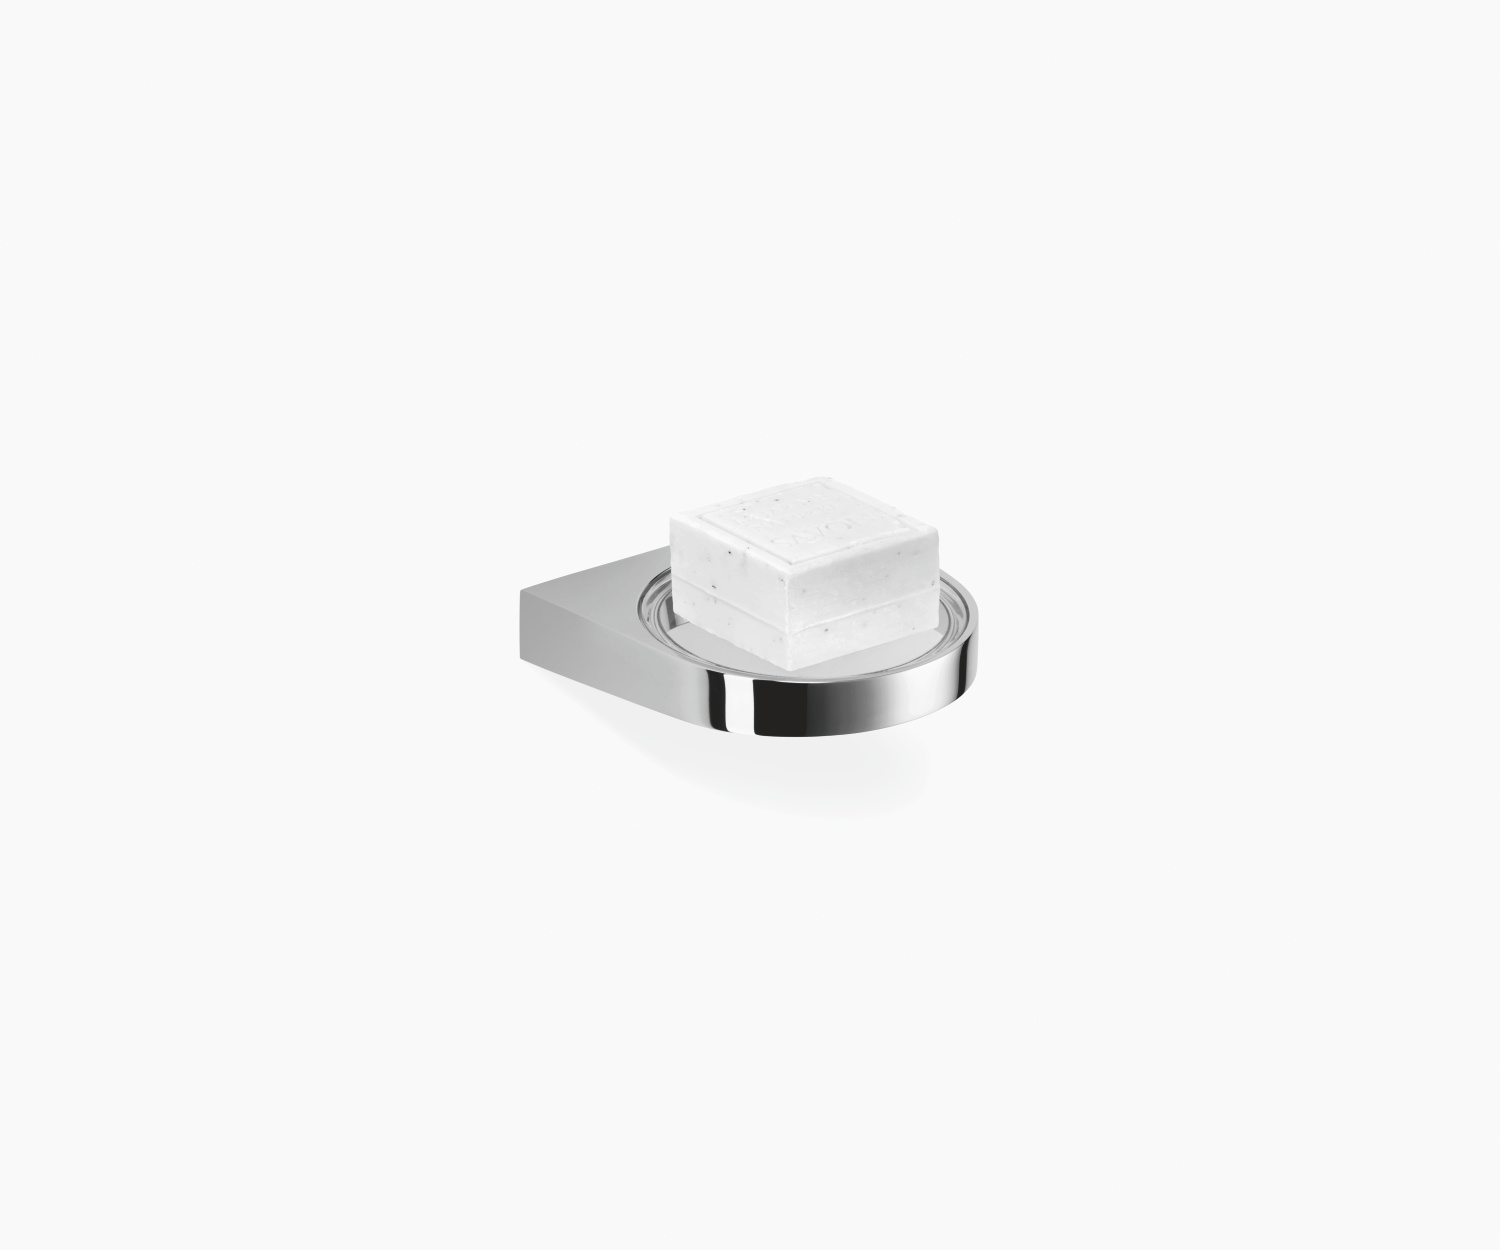 Soap dish wall model - polished chrome - 83 410 840-00